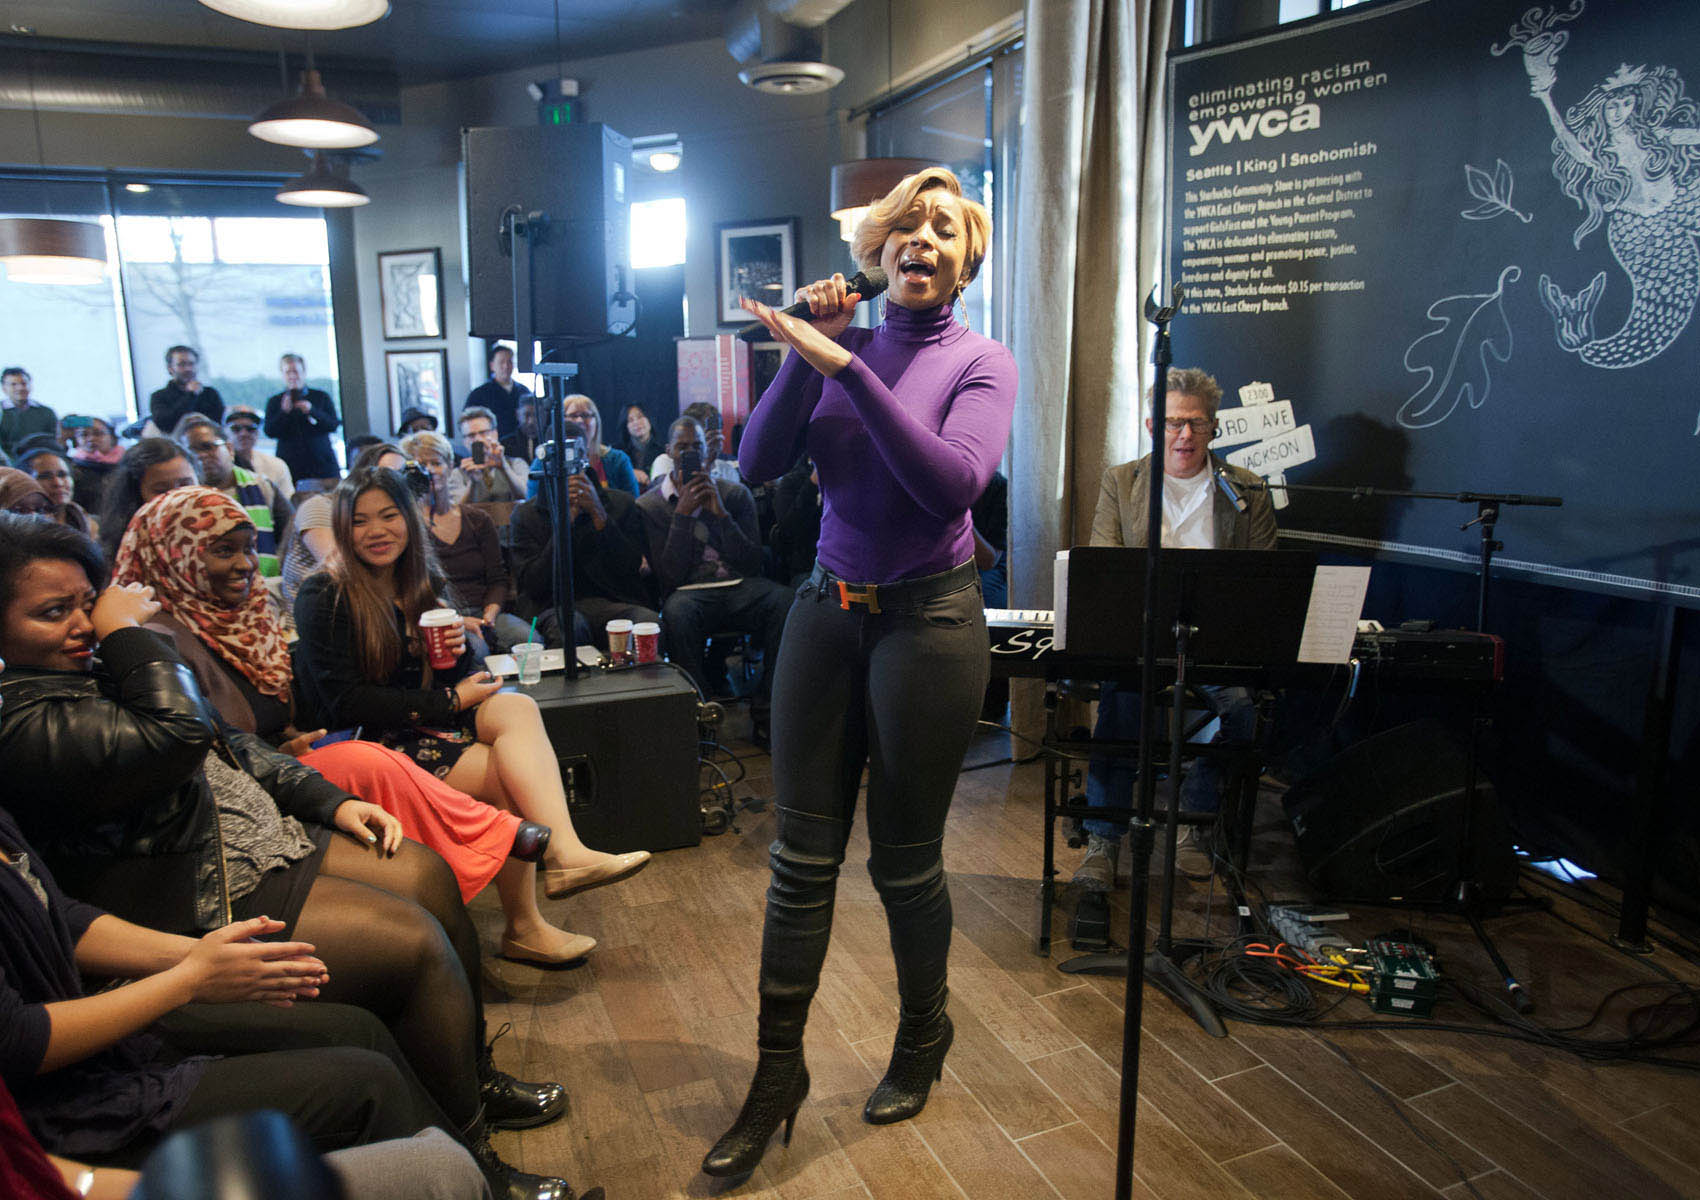 Mary J. Blige performs a private show at a Starbucks store.